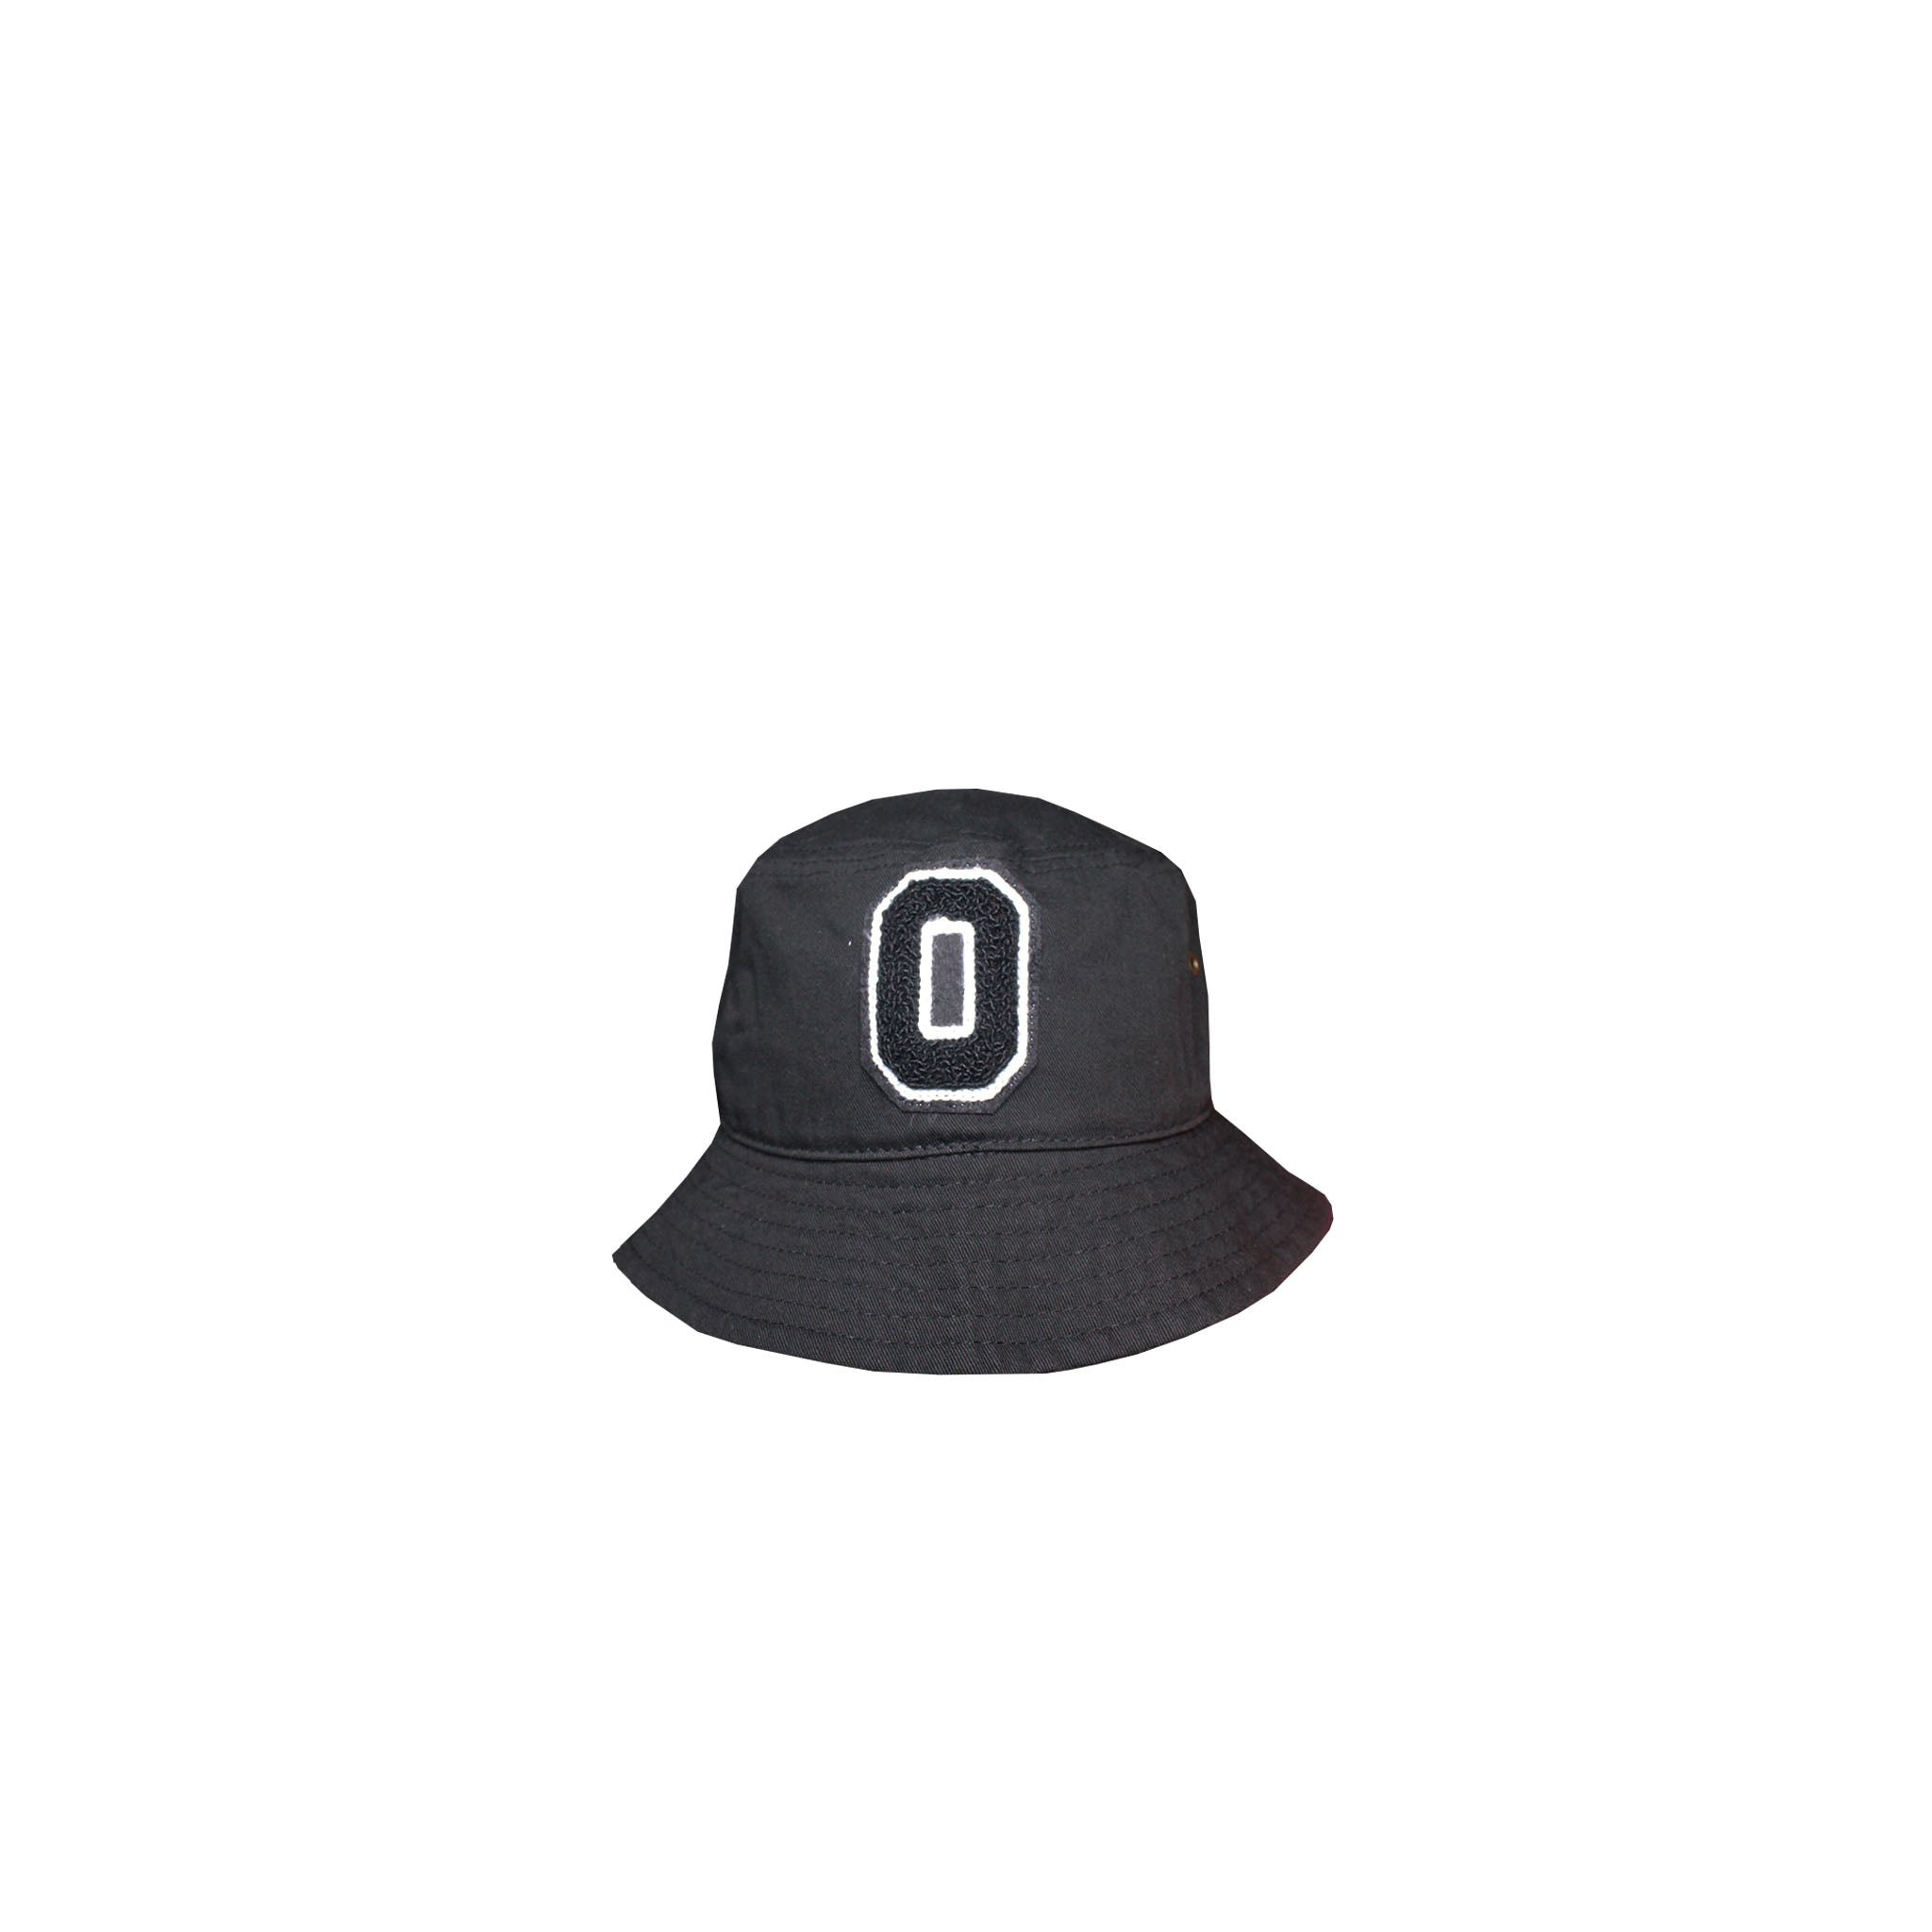 OTW Bucket Hat (Black) - OTW Threads denim streetwear